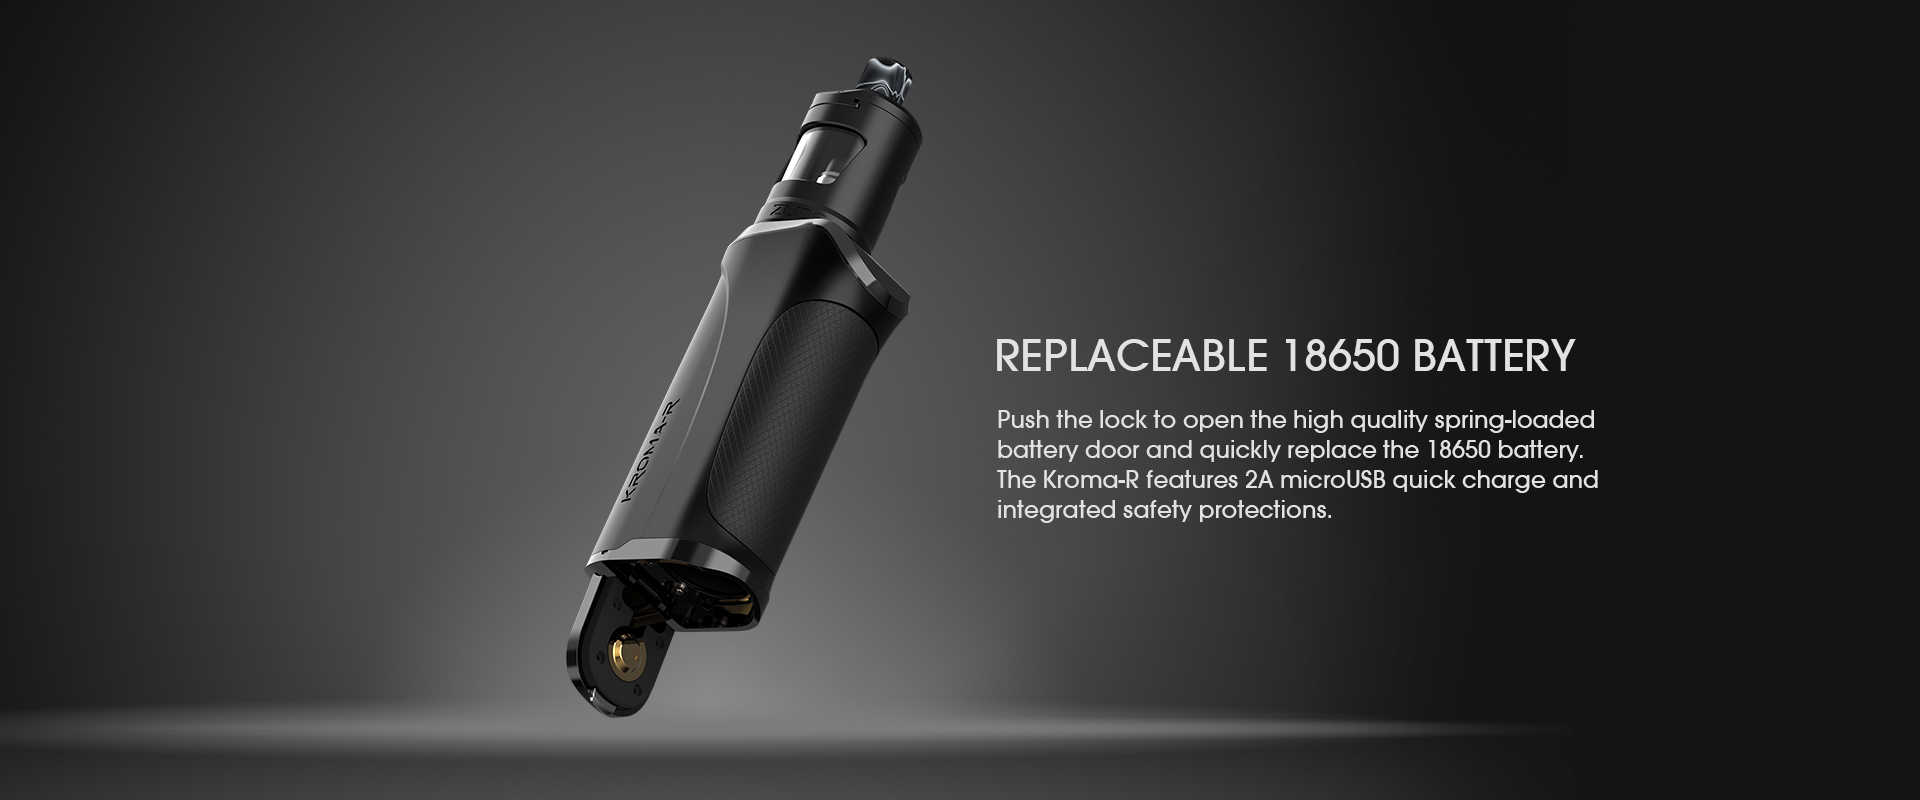 kroma-r-replacable-battery